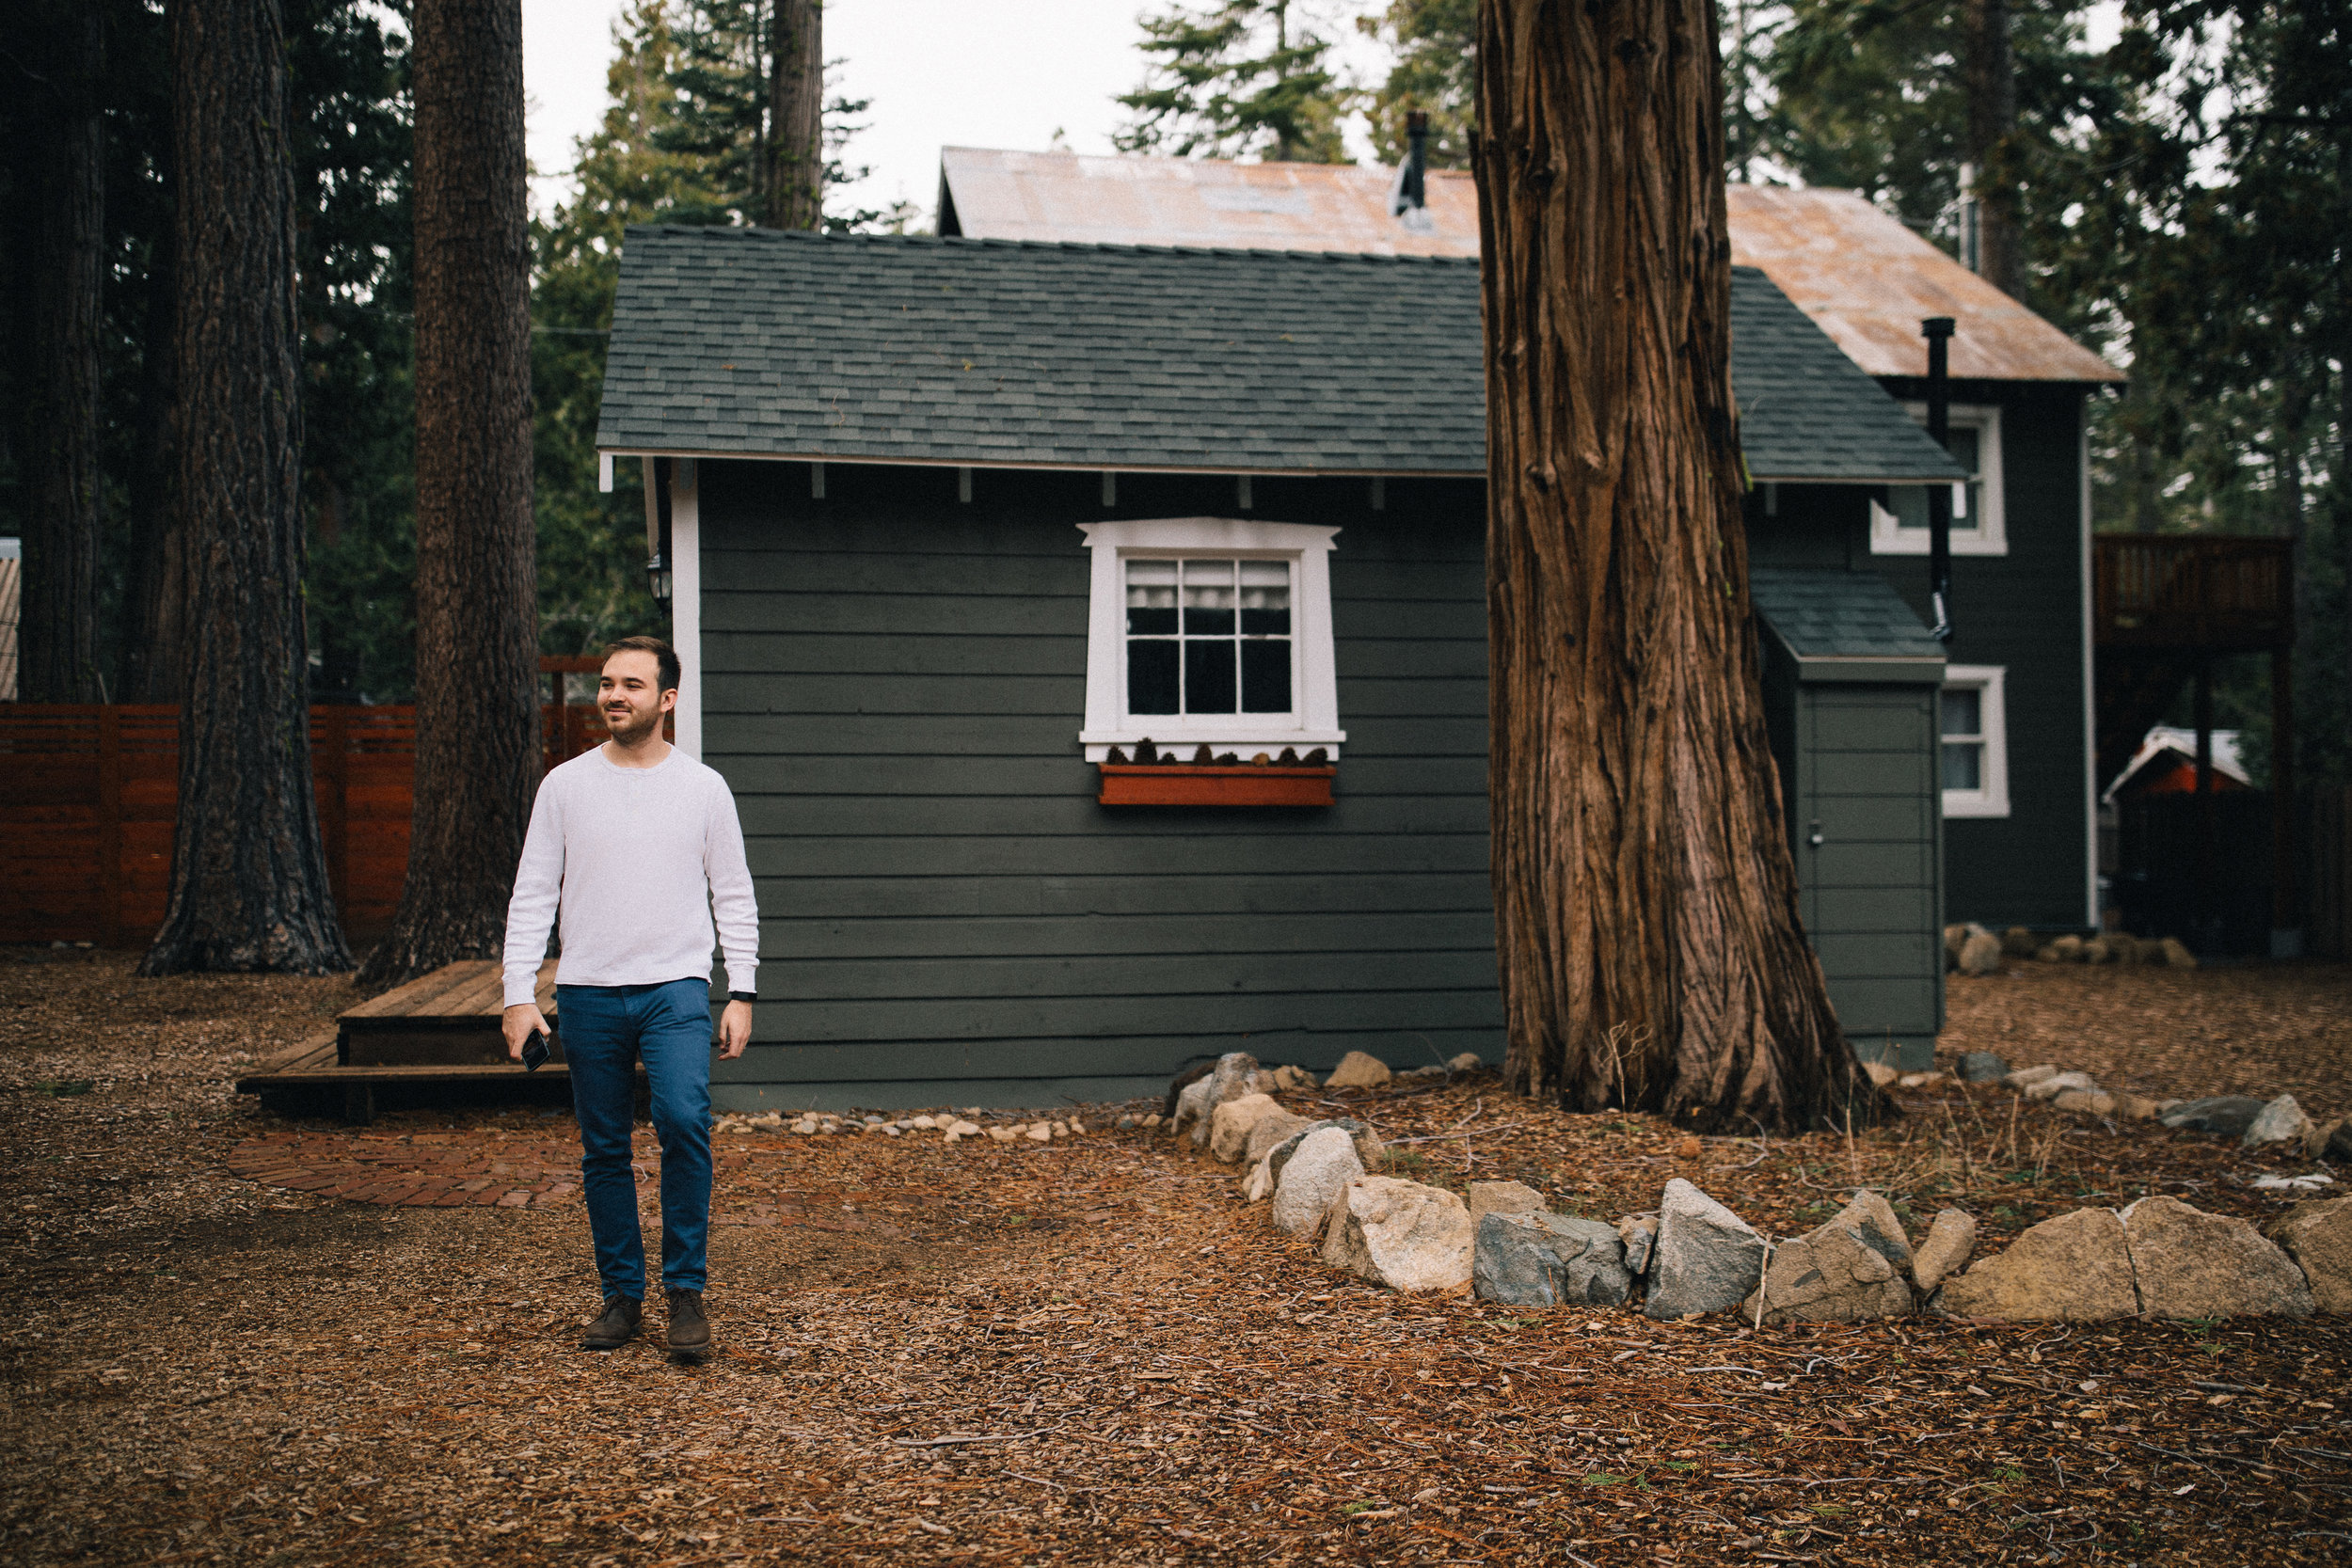 2018_01_01 Tahoe Trip 2018 Edited Full Resolution 0018.jpg